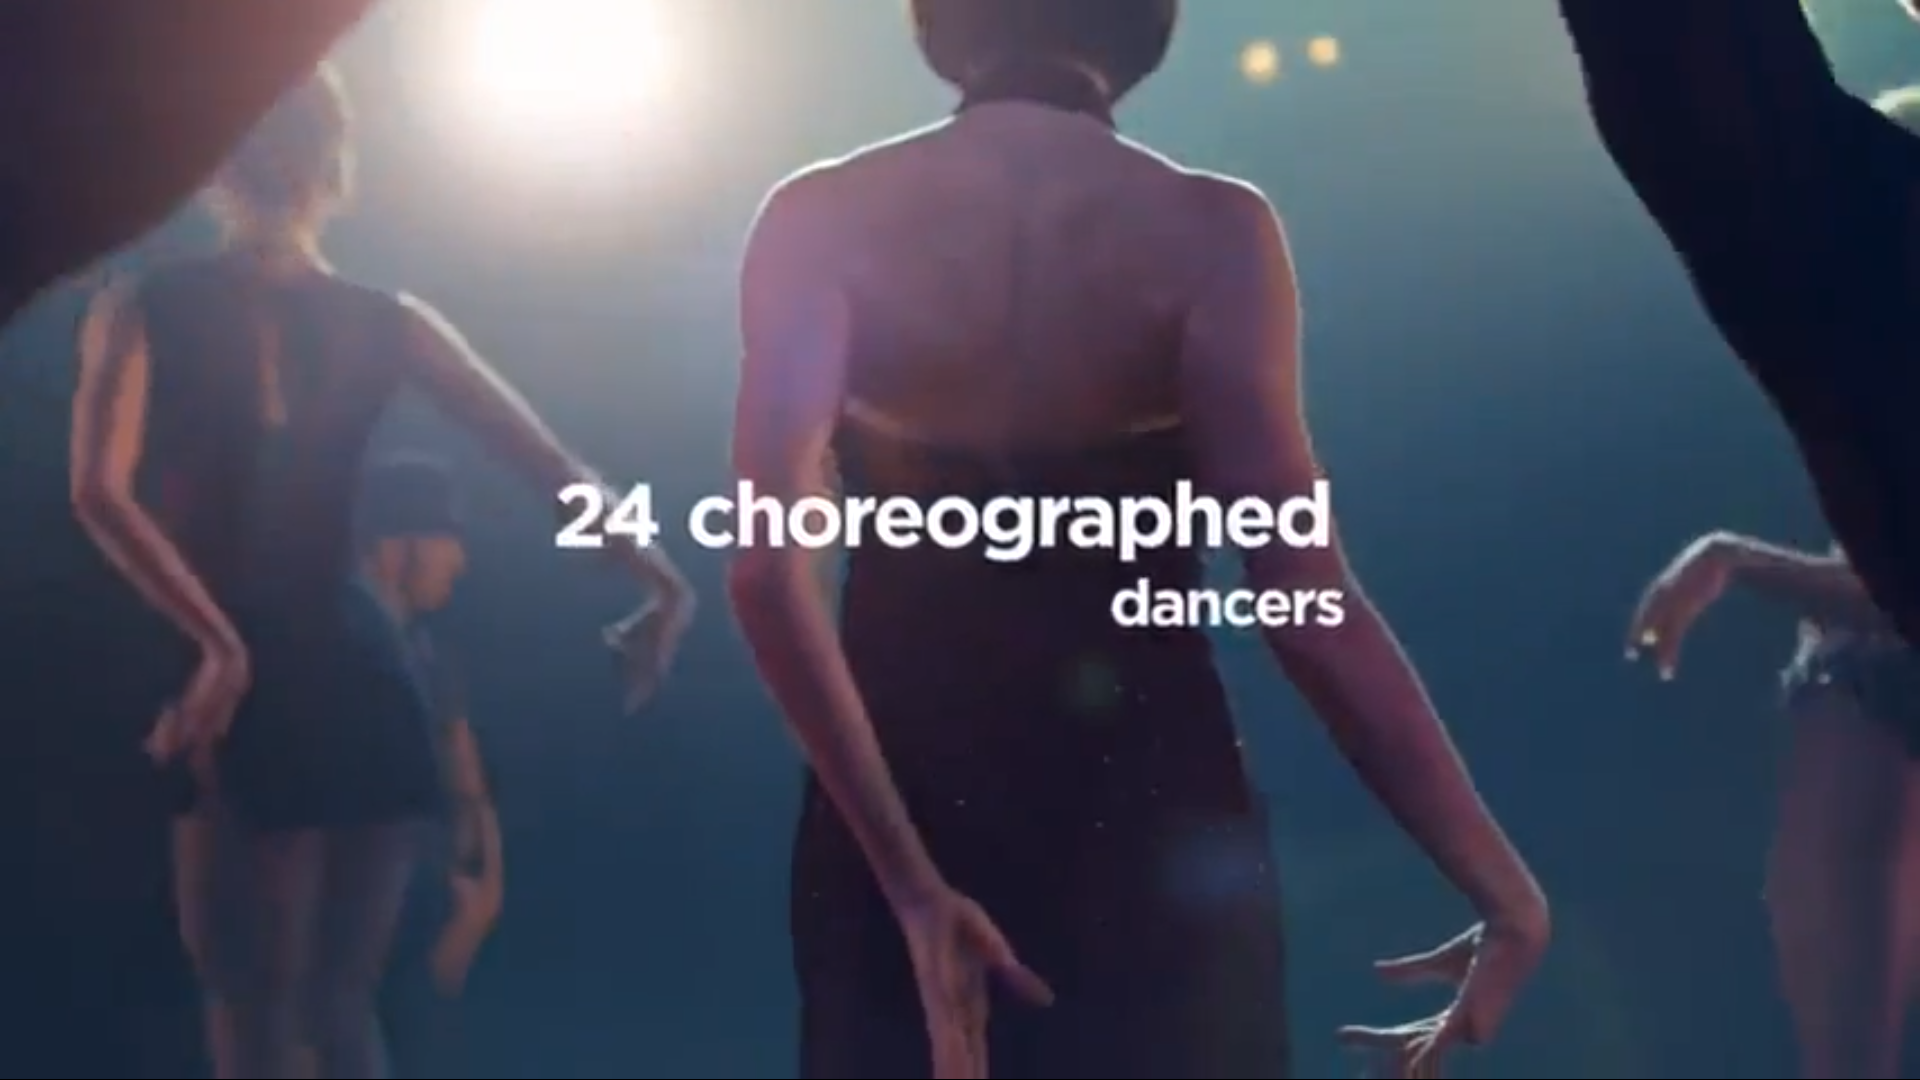 24 'Choreographed' Dancers?